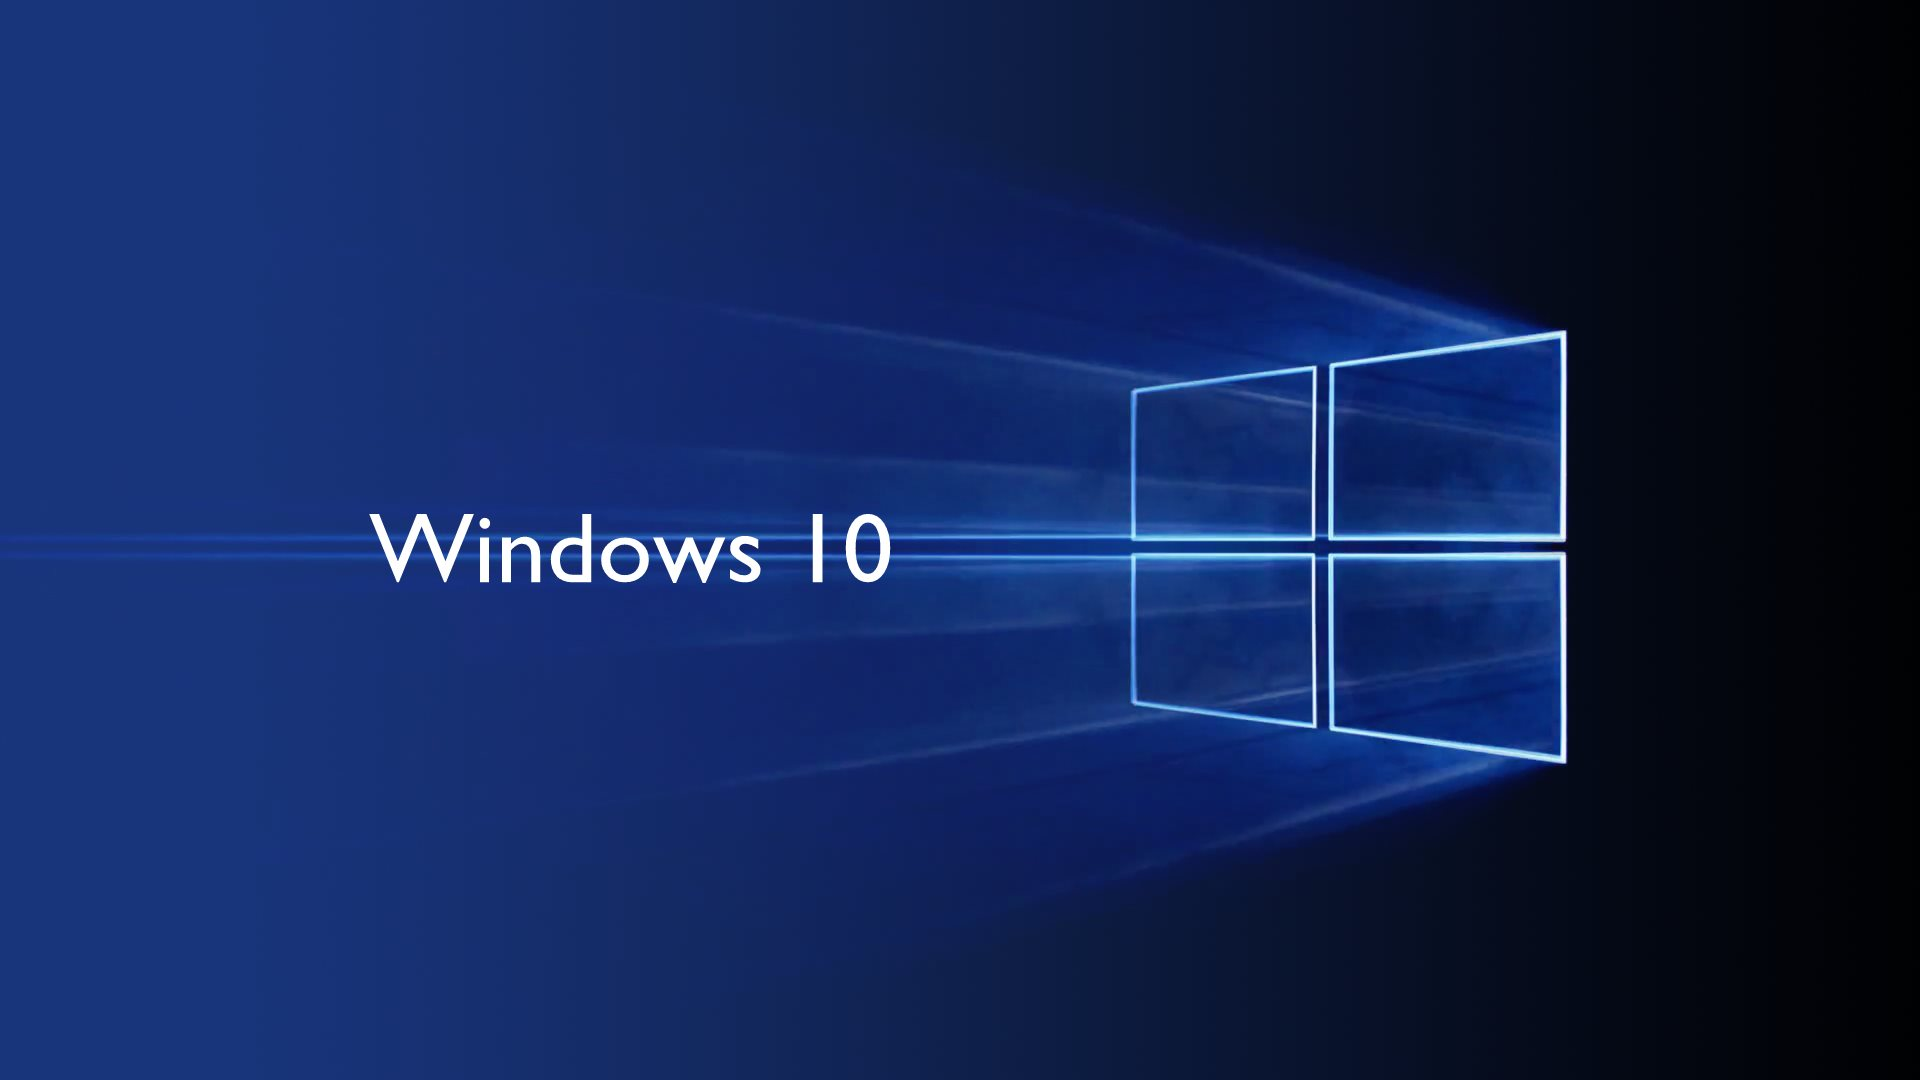 Microsoft Says Windows 10 Breaks All Records Is The Best